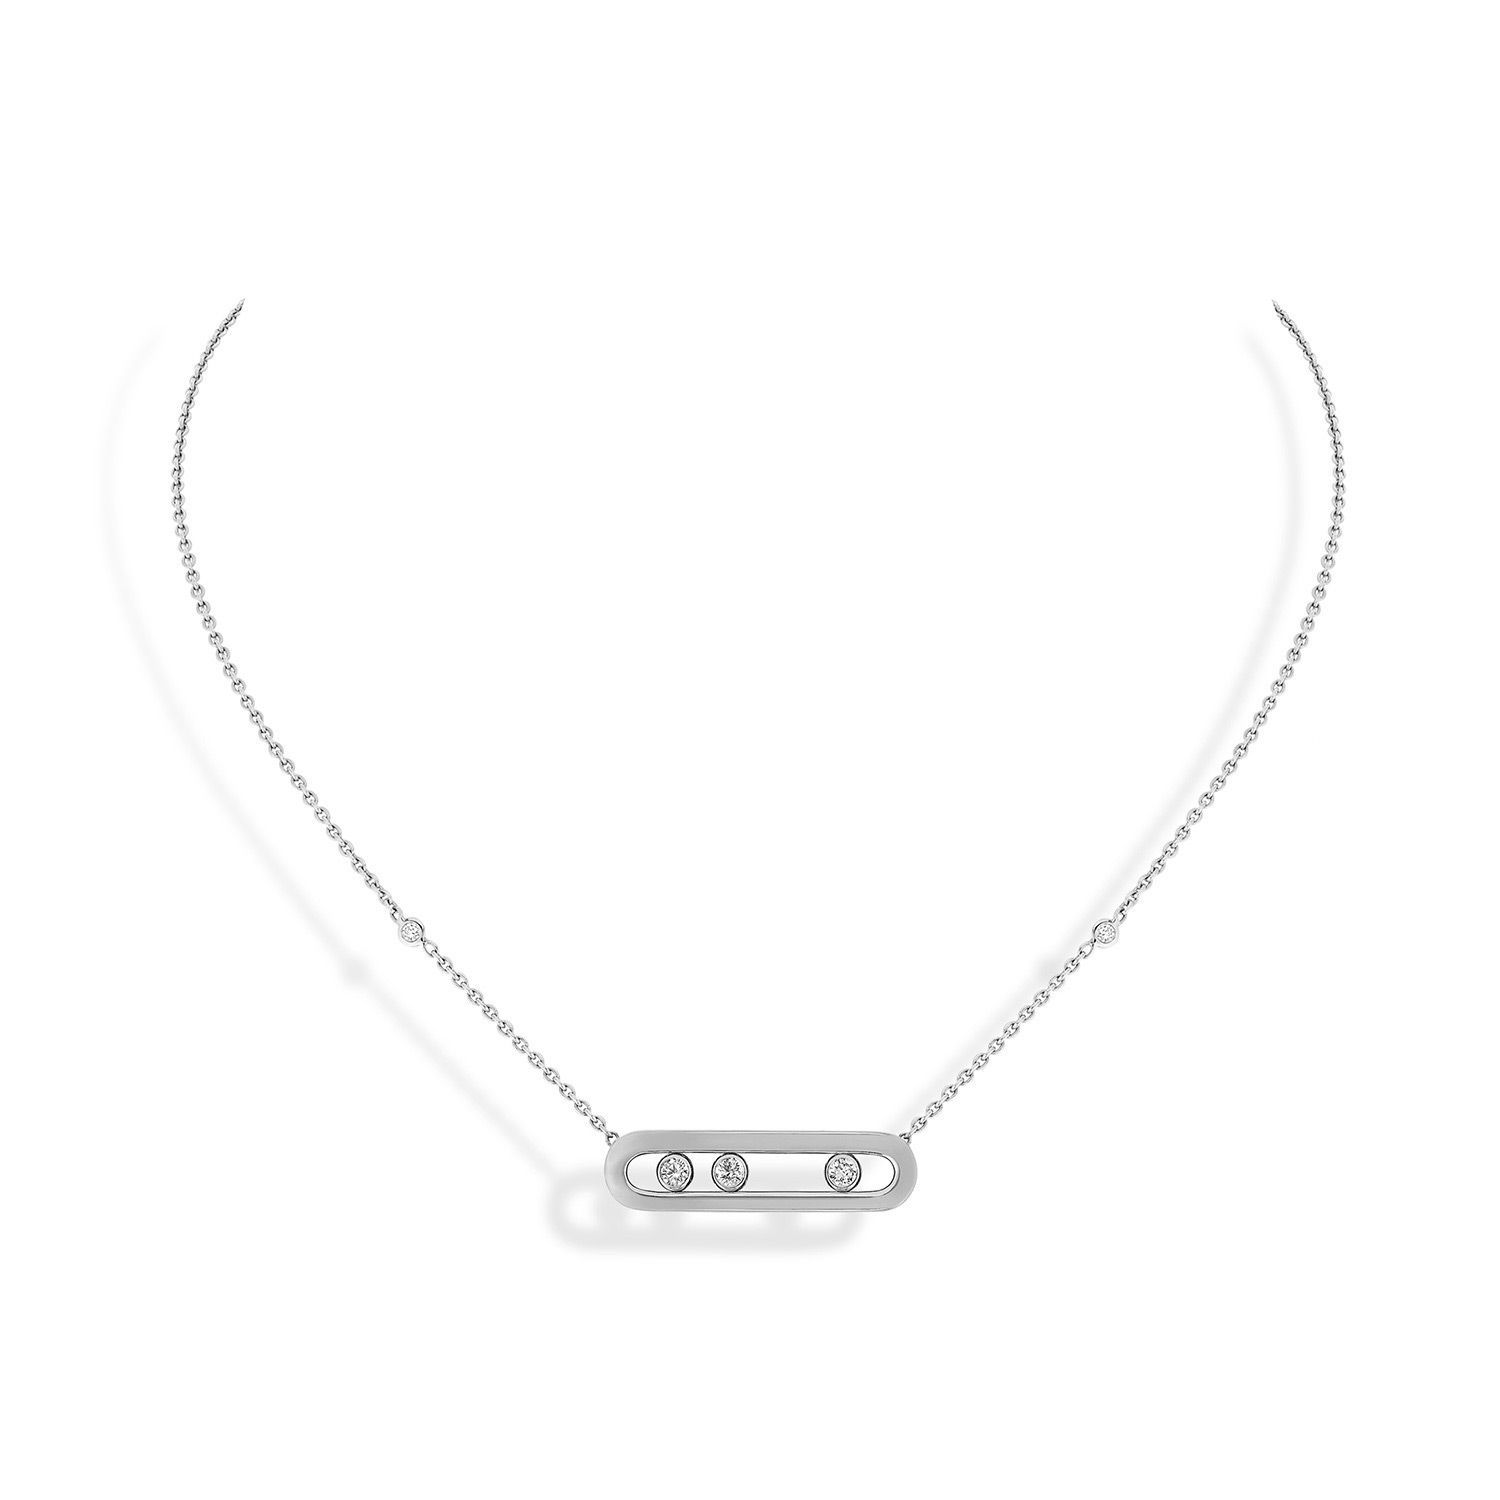 Collier Messika Baby Move en or blanc et diamants vue 1